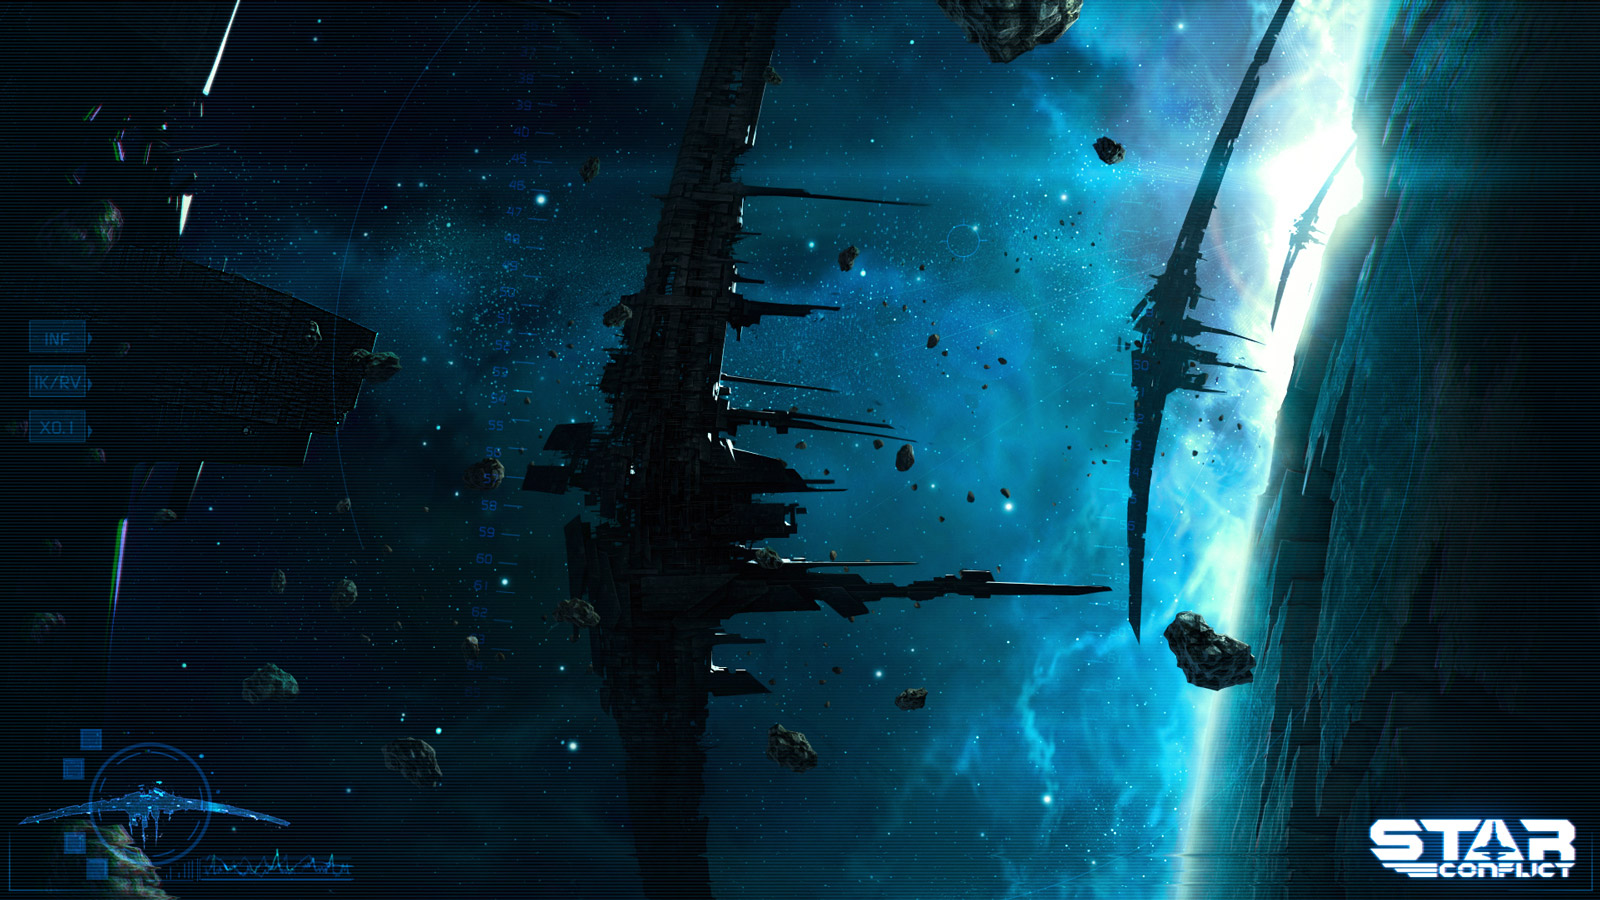 Free Star Conflict Wallpaper in 1600x900